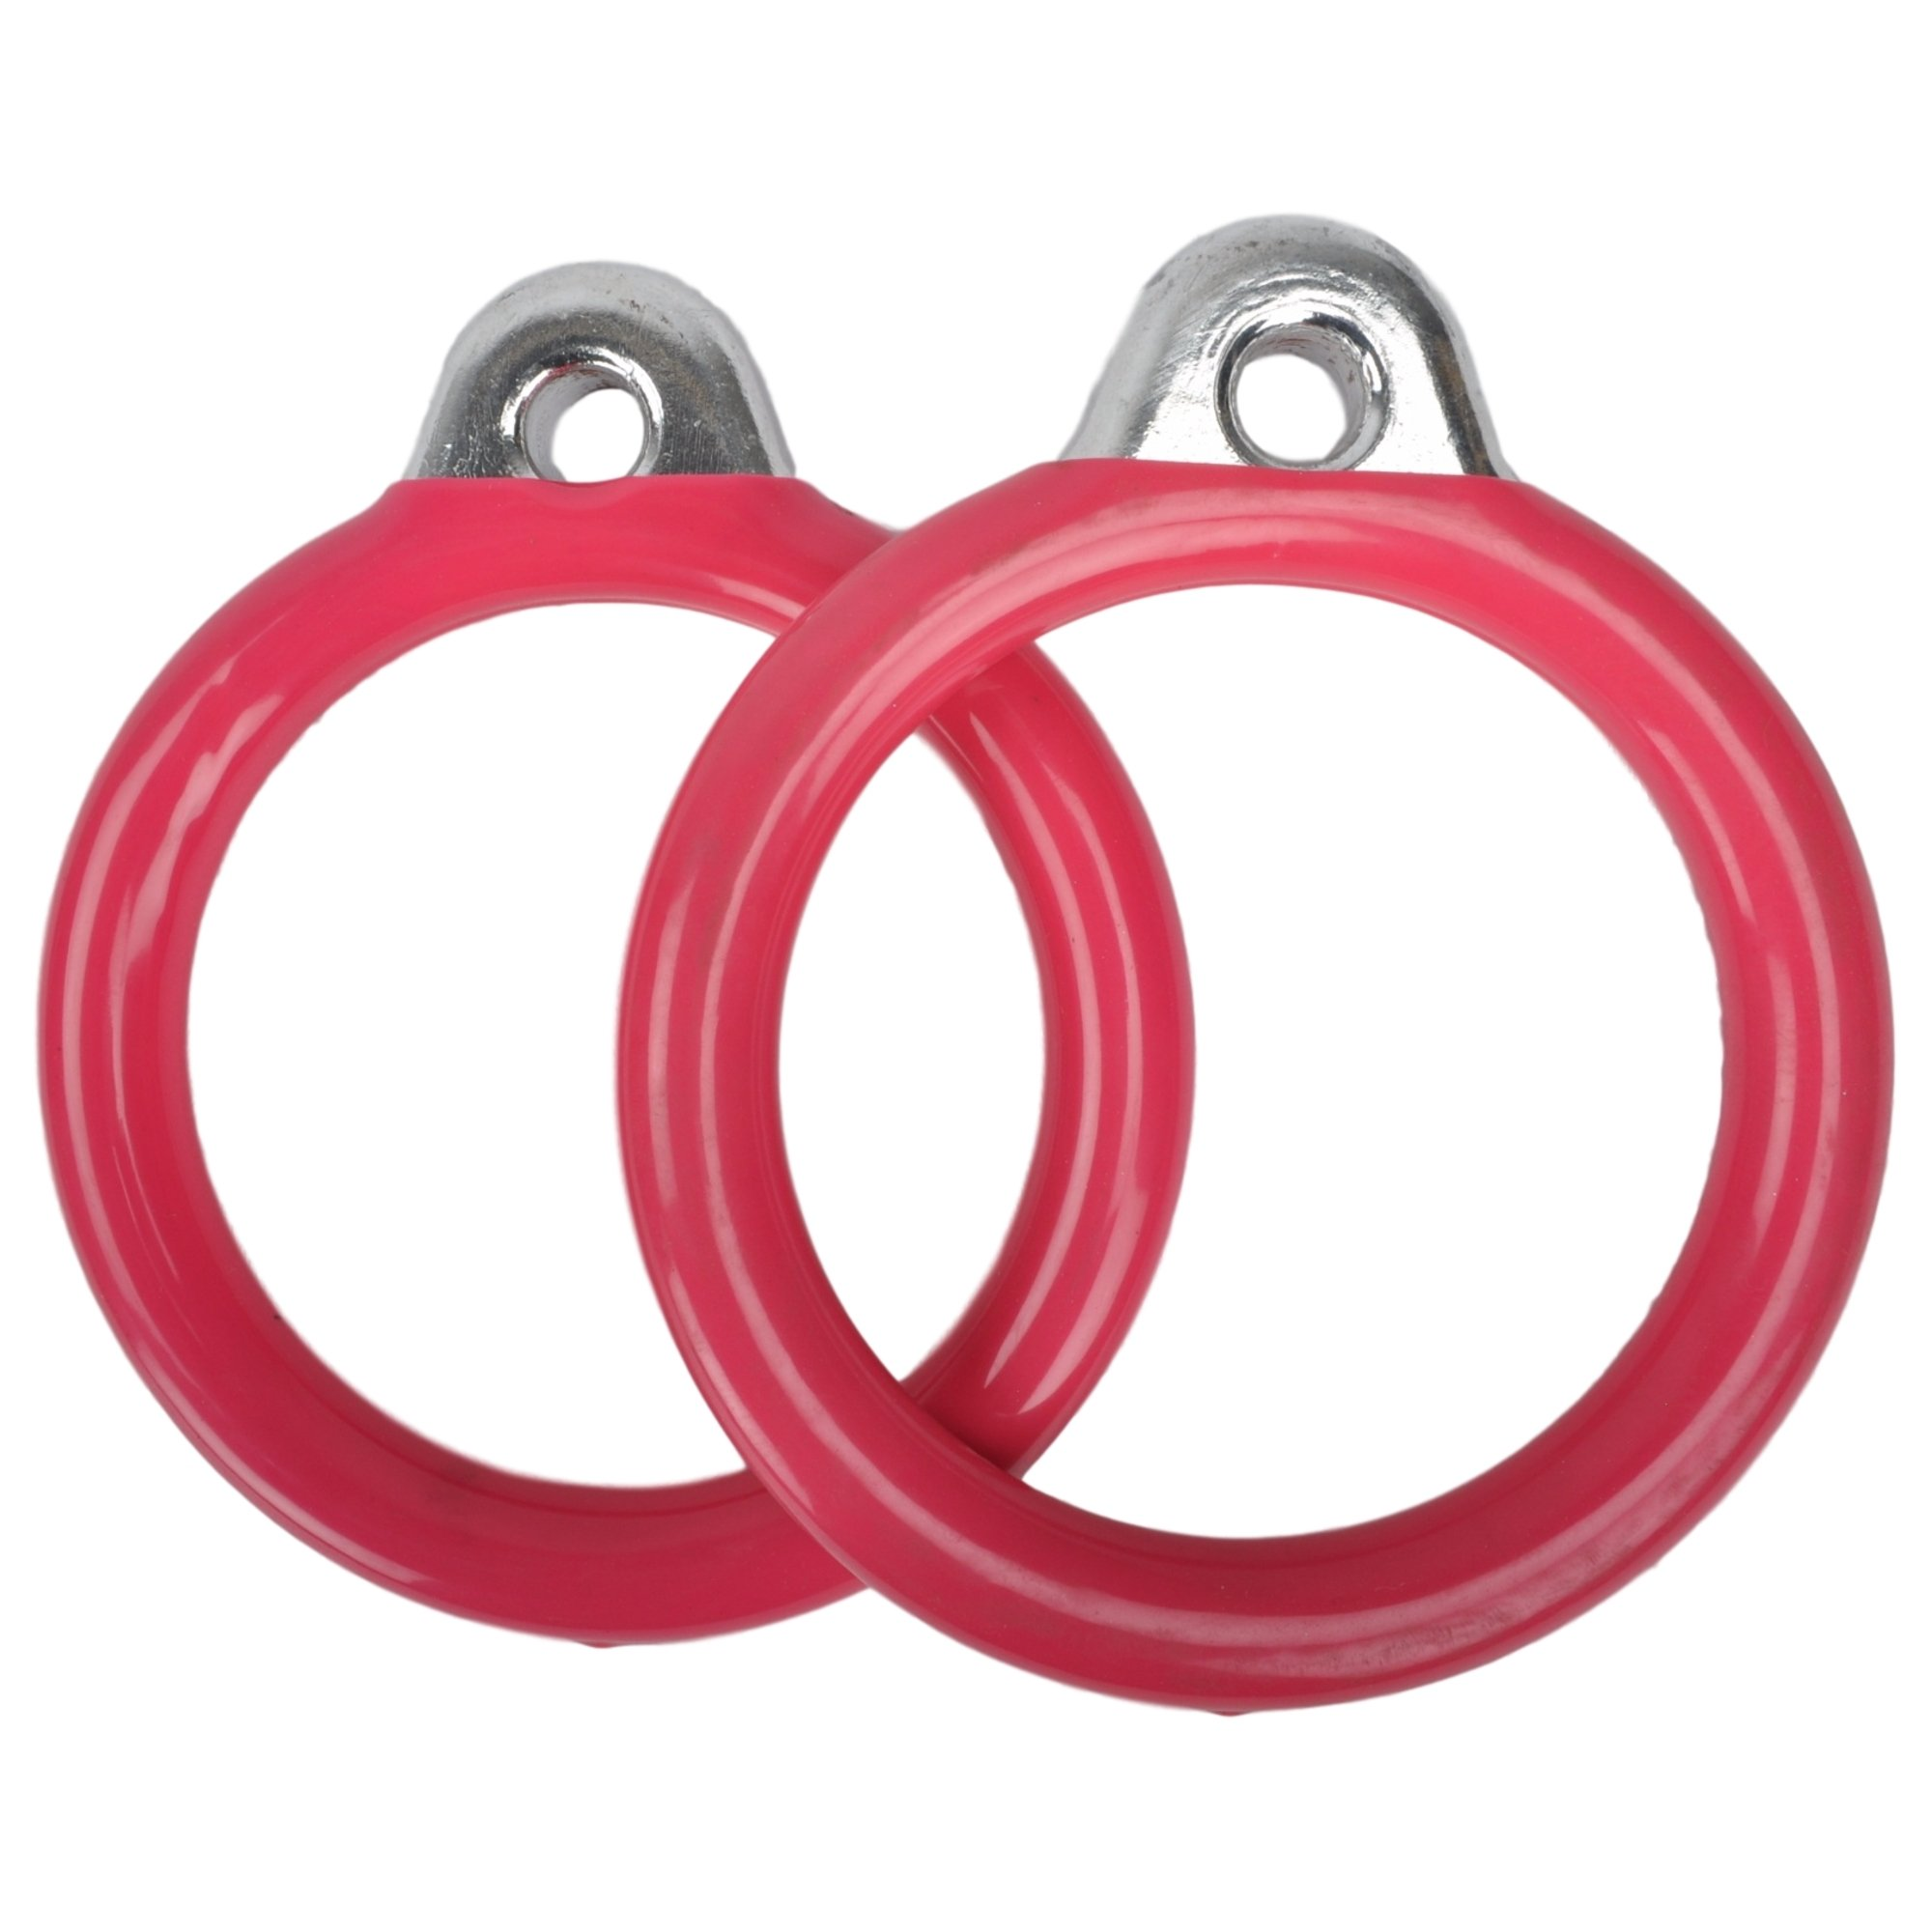 Swing Set Stuff Inc. Commercial Round Trapeze Rings with SSS Logo Sticker Playground Attachment, Pink by Swing Set Stuff Inc.